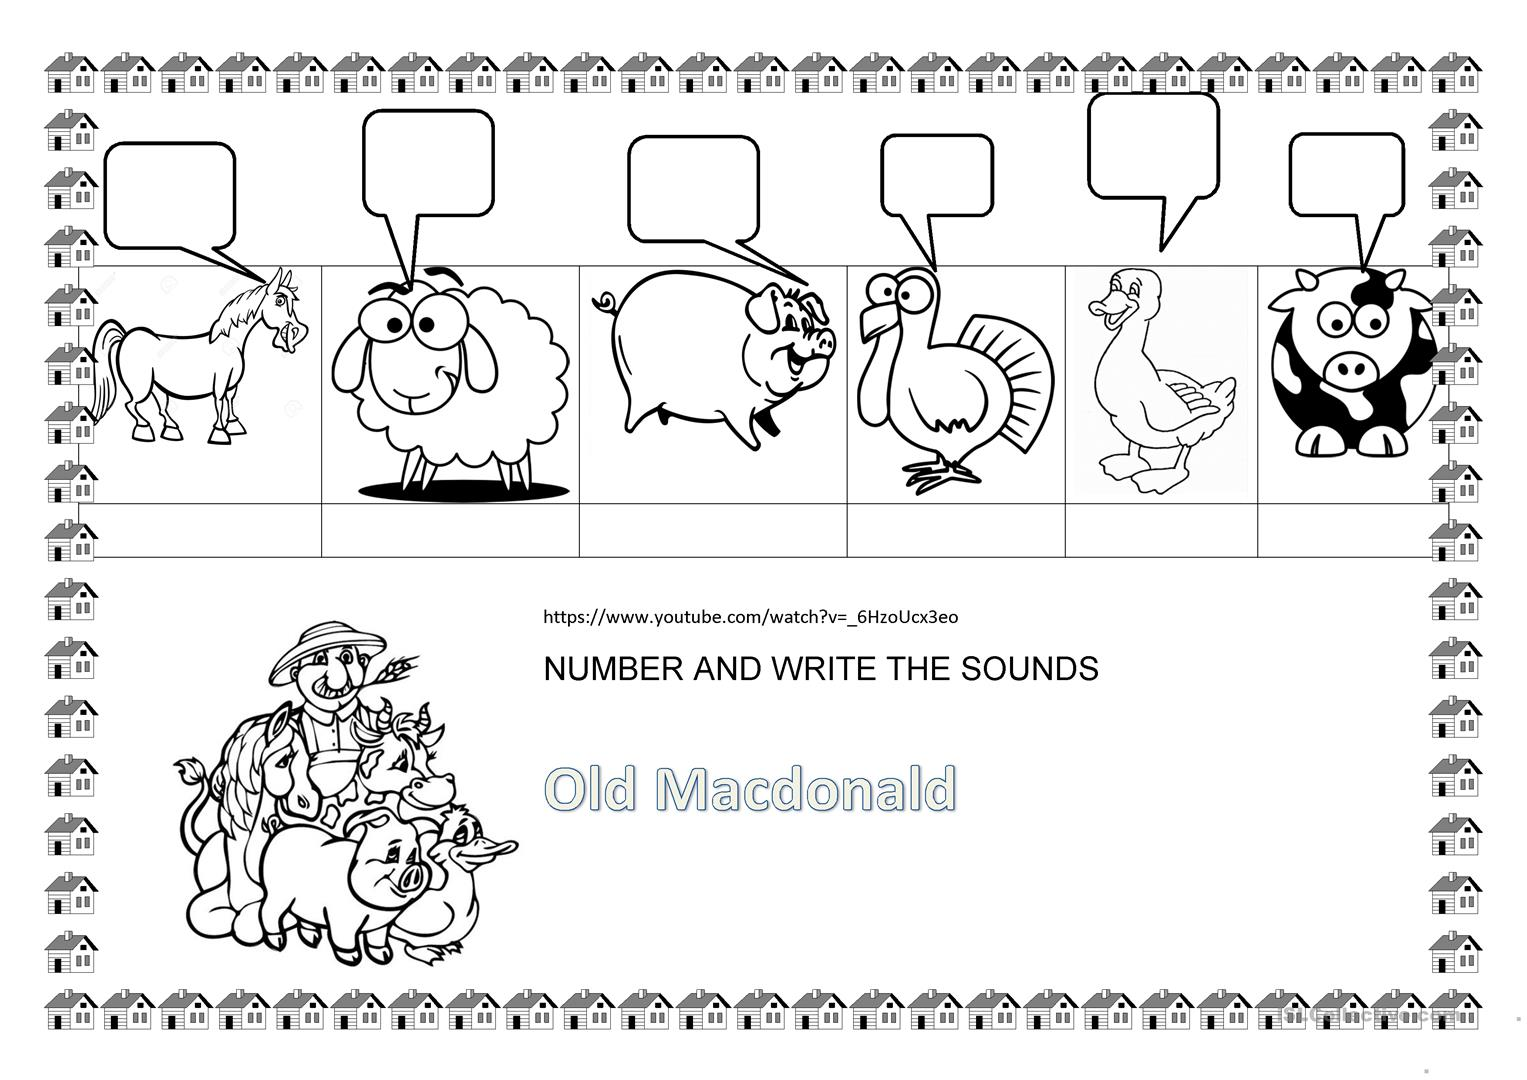 Old Macdonald Farm Animals